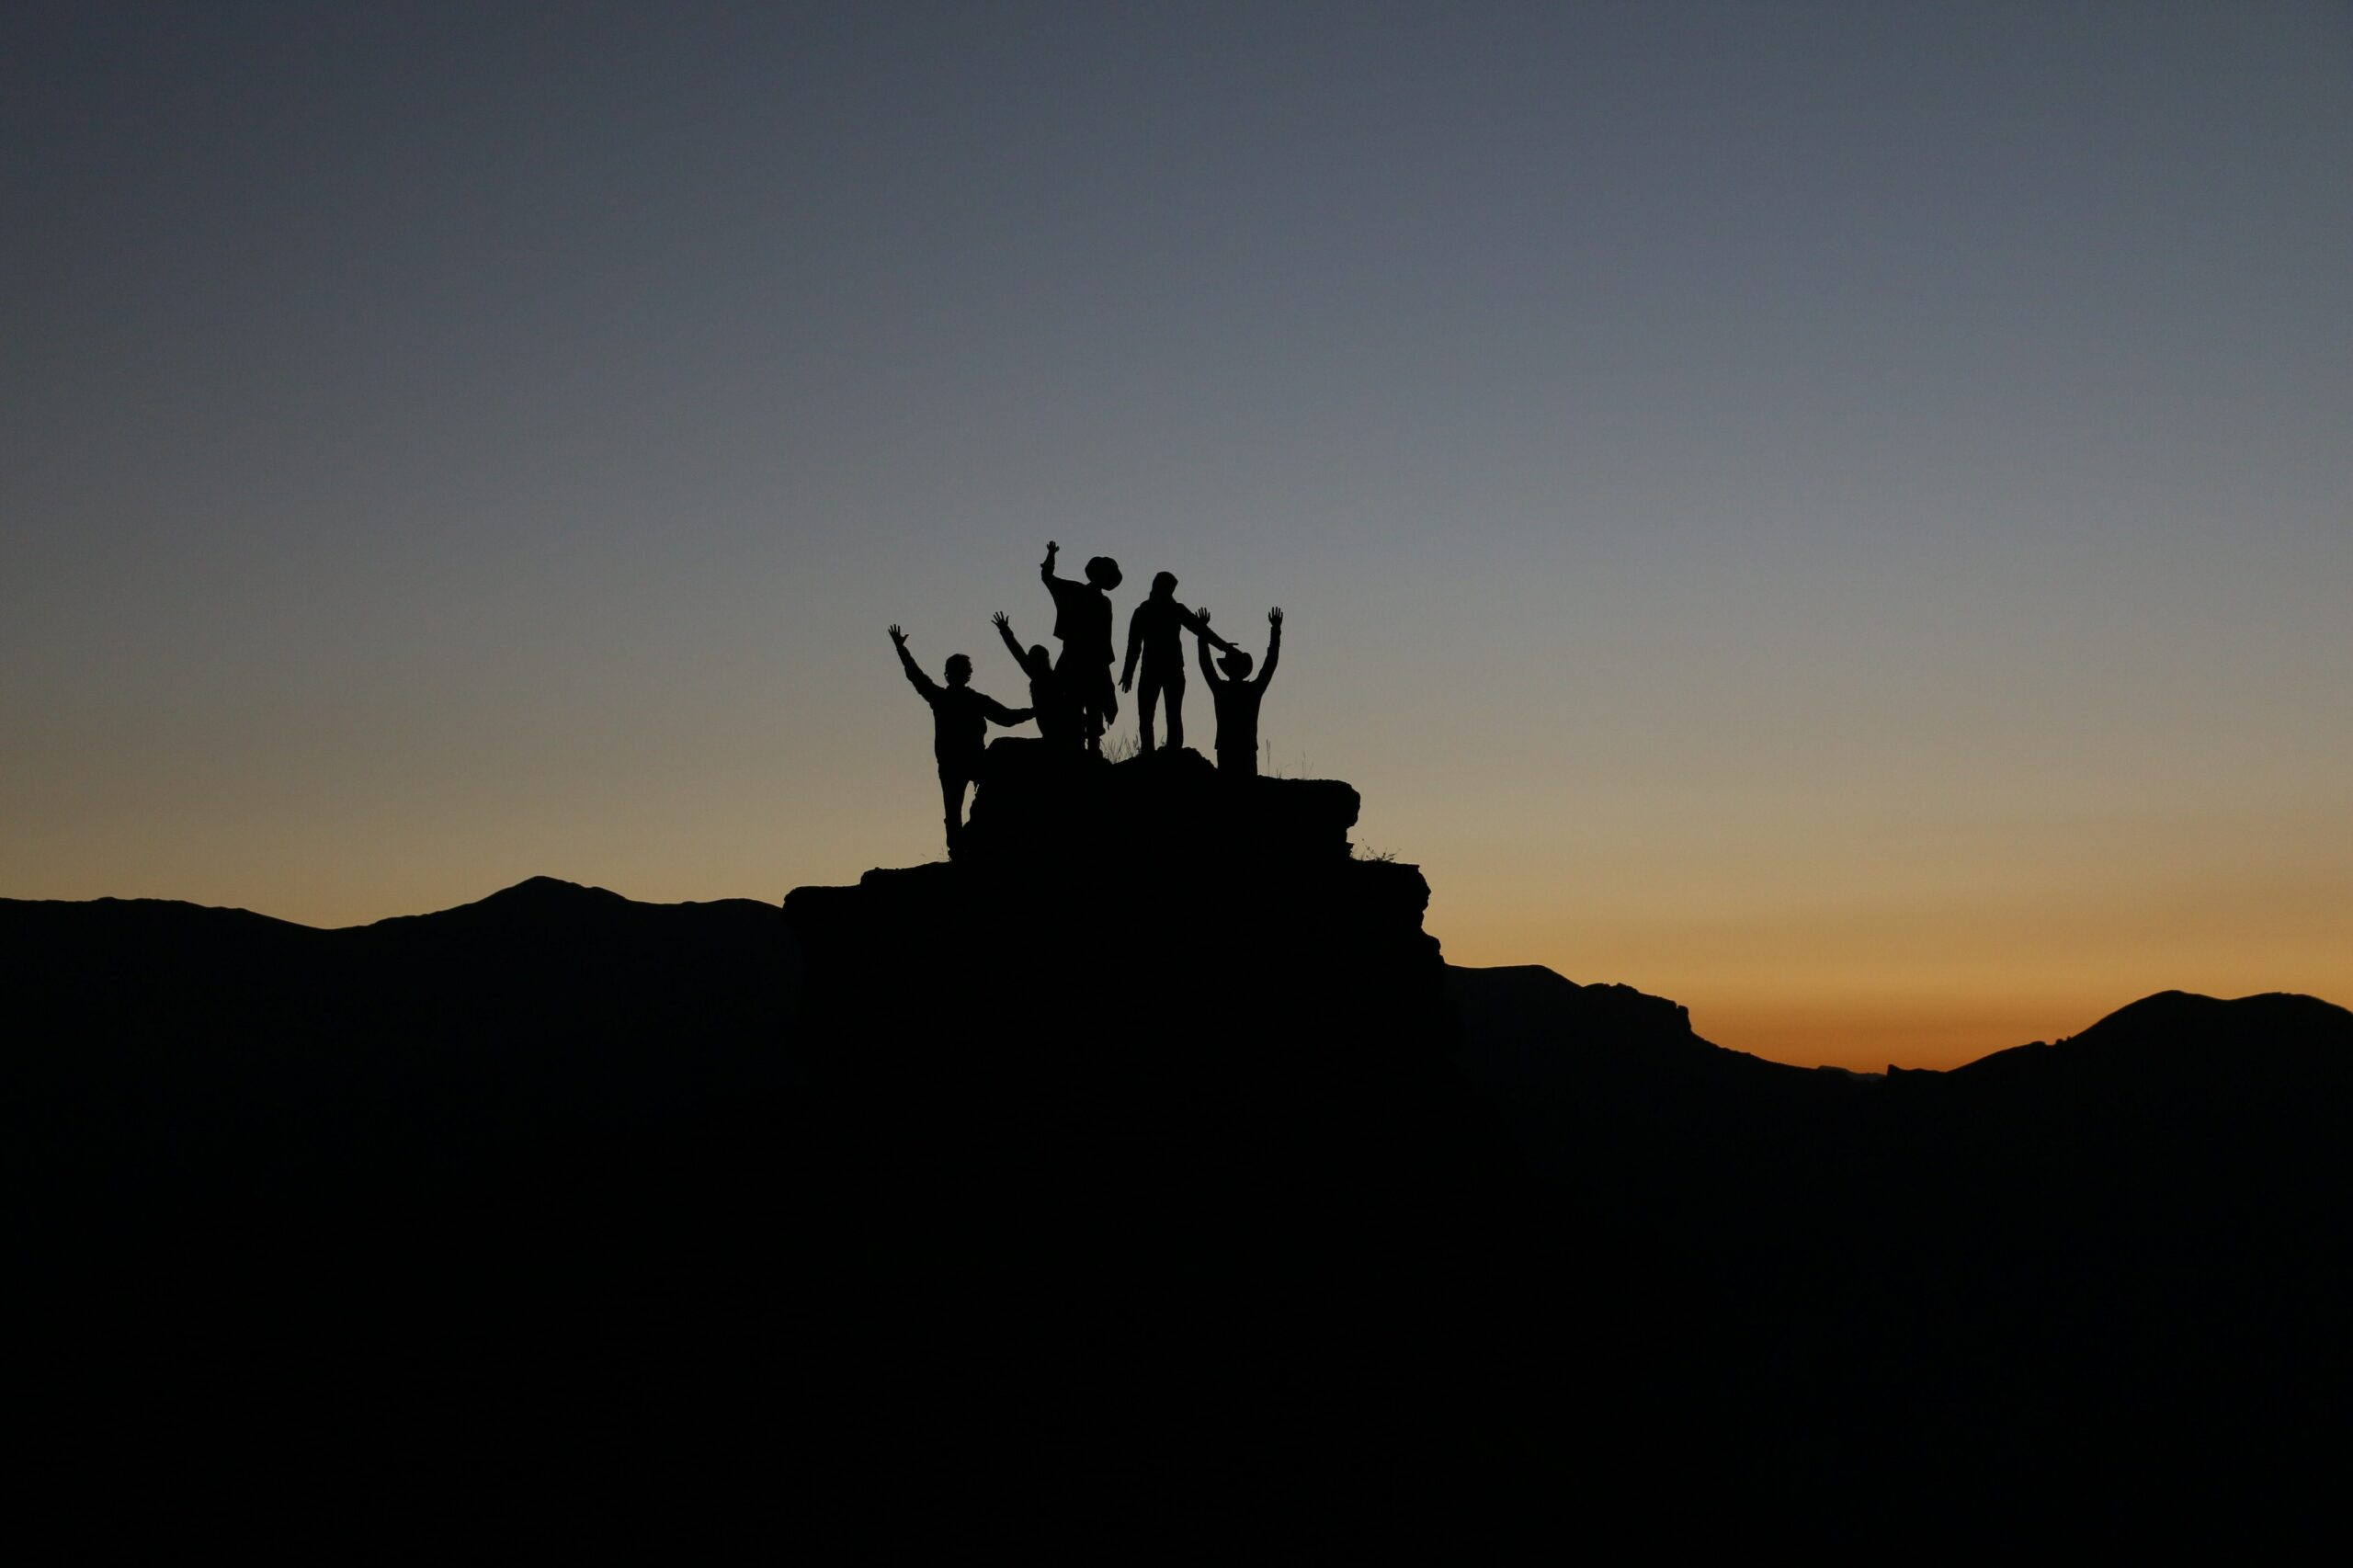 silhouette of people standing on highland during golden hours